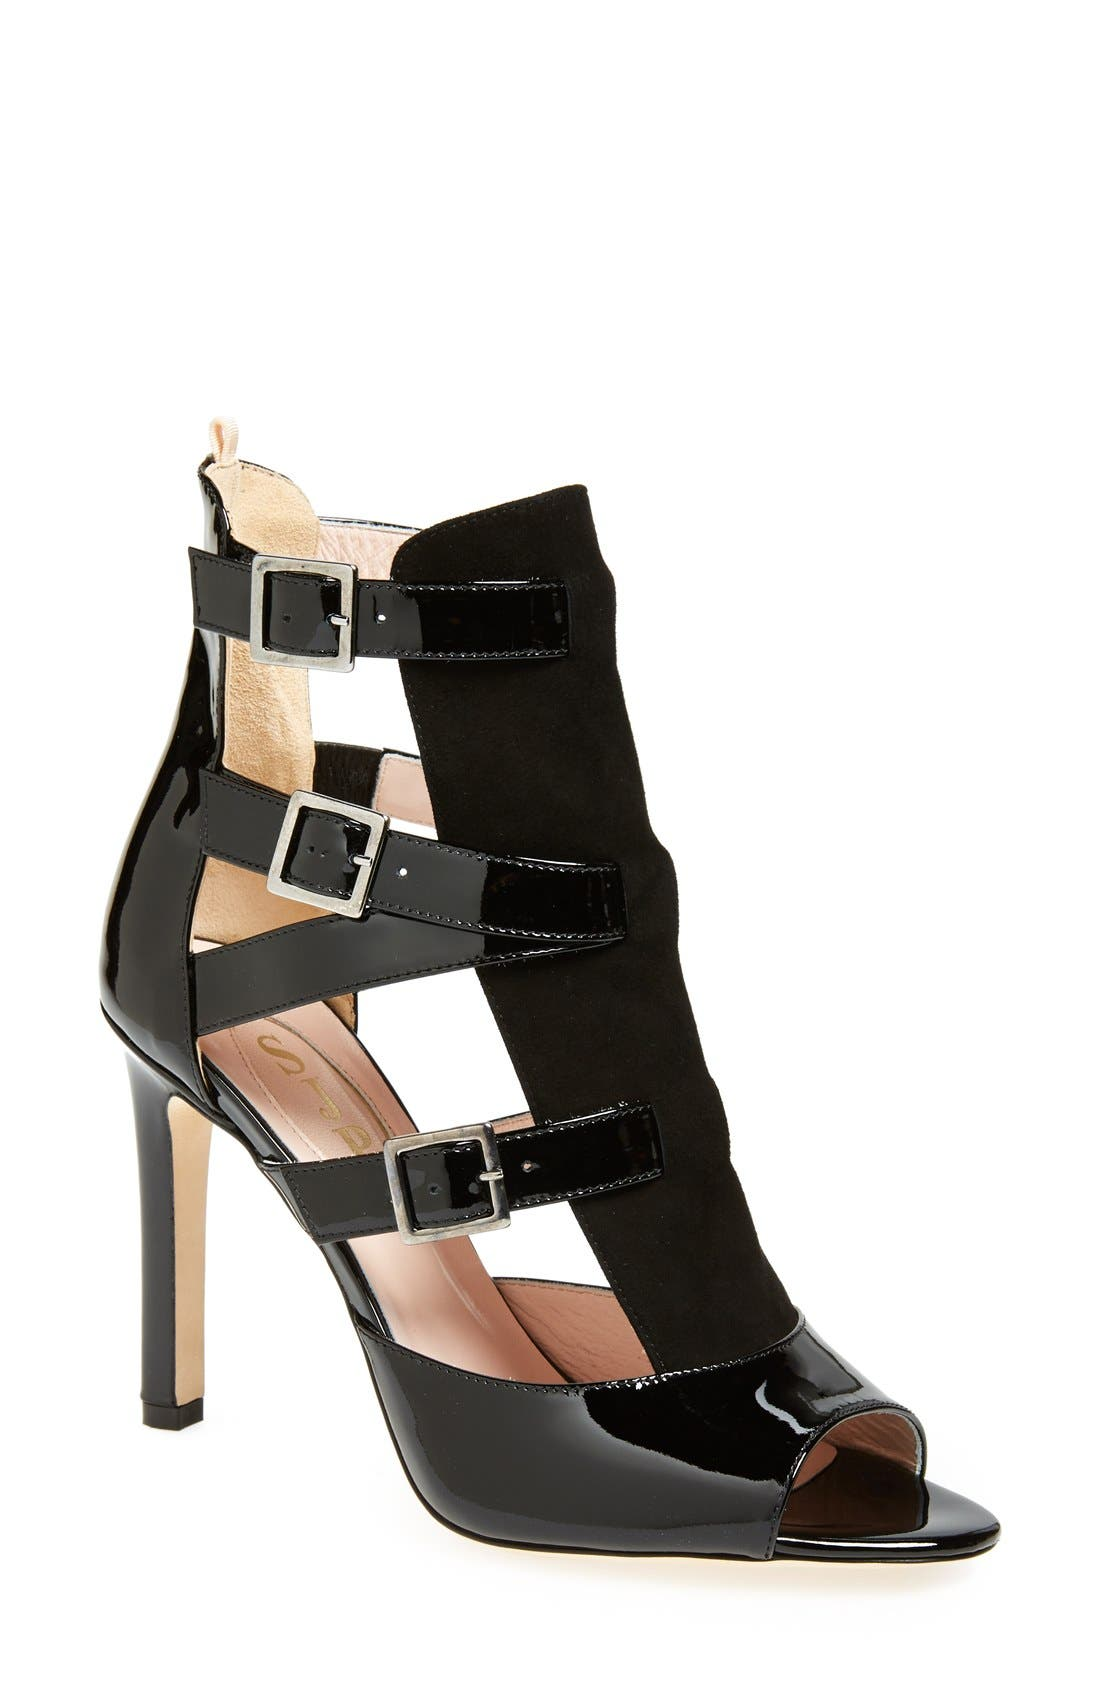 Alternate Image 1 Selected - SJP 'Gina' Sandal (Women)